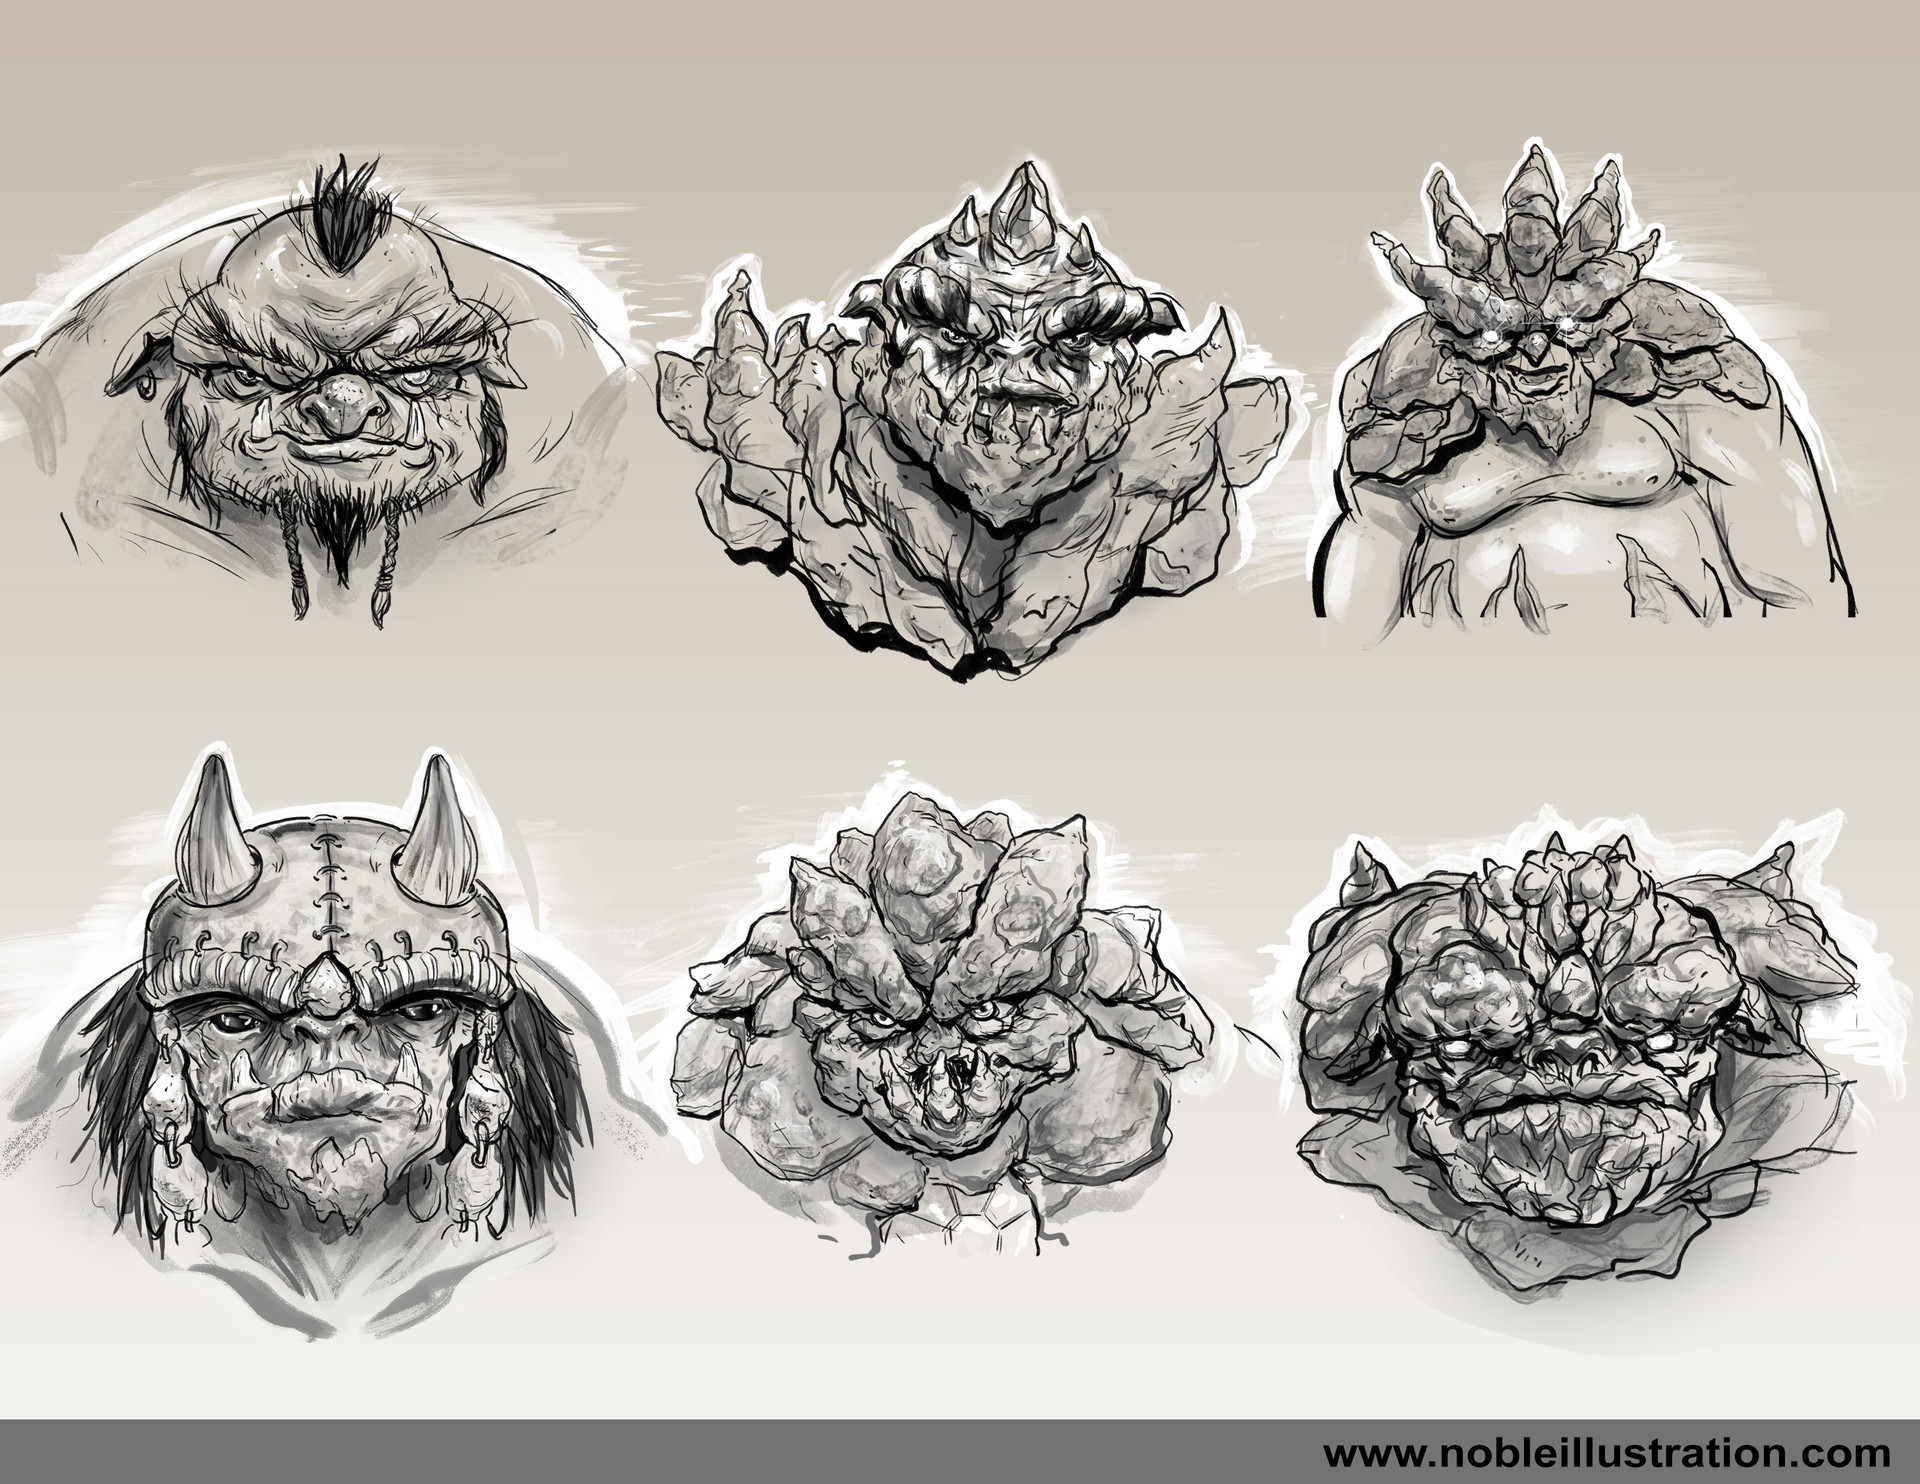 Stephen noble rocktrolls